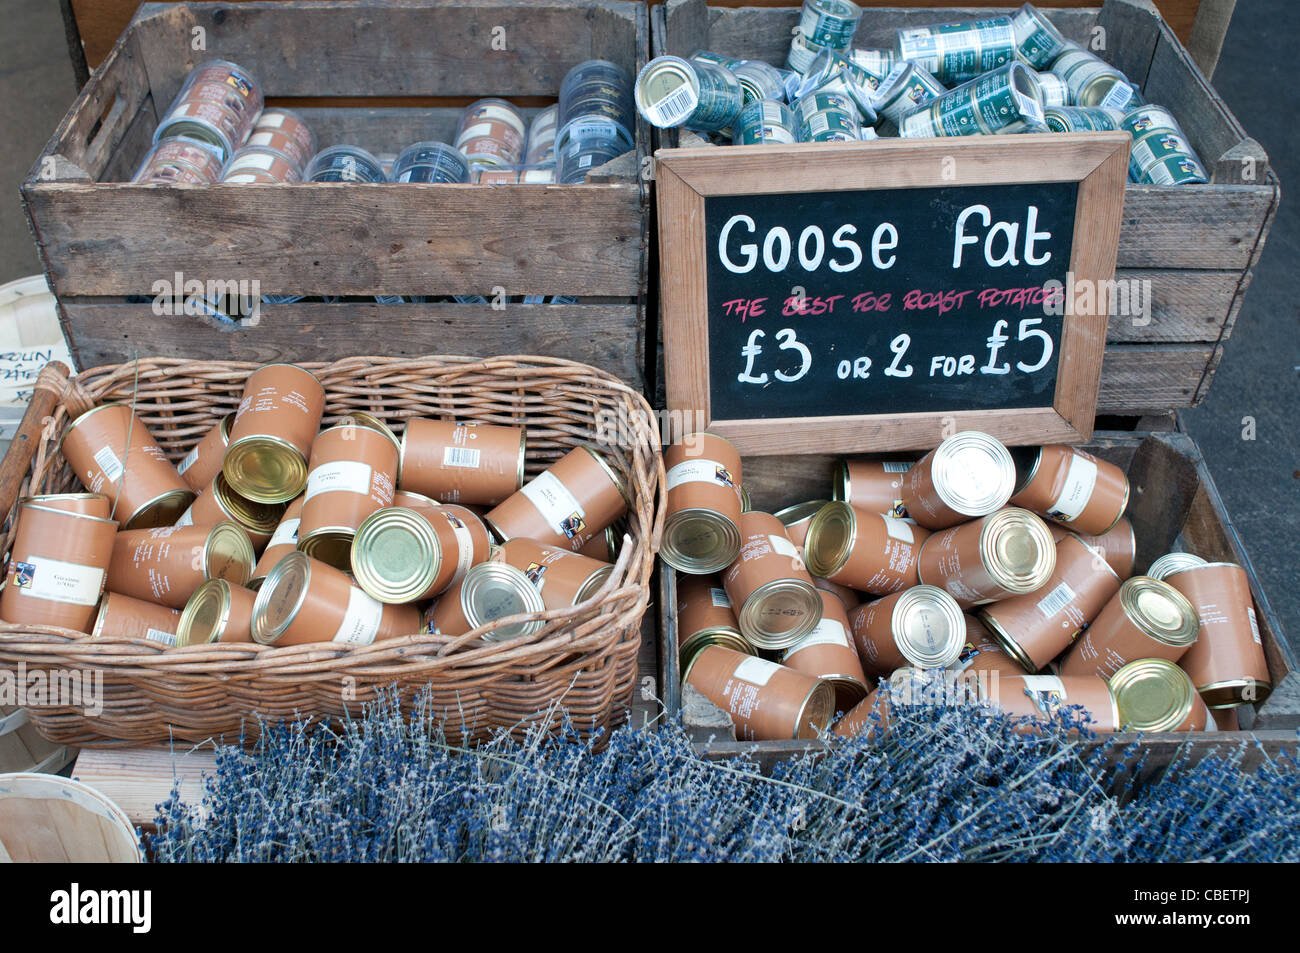 Tins of Goose Fat for Sale, Borough Market, Southwark, London, England, UK - Stock Image